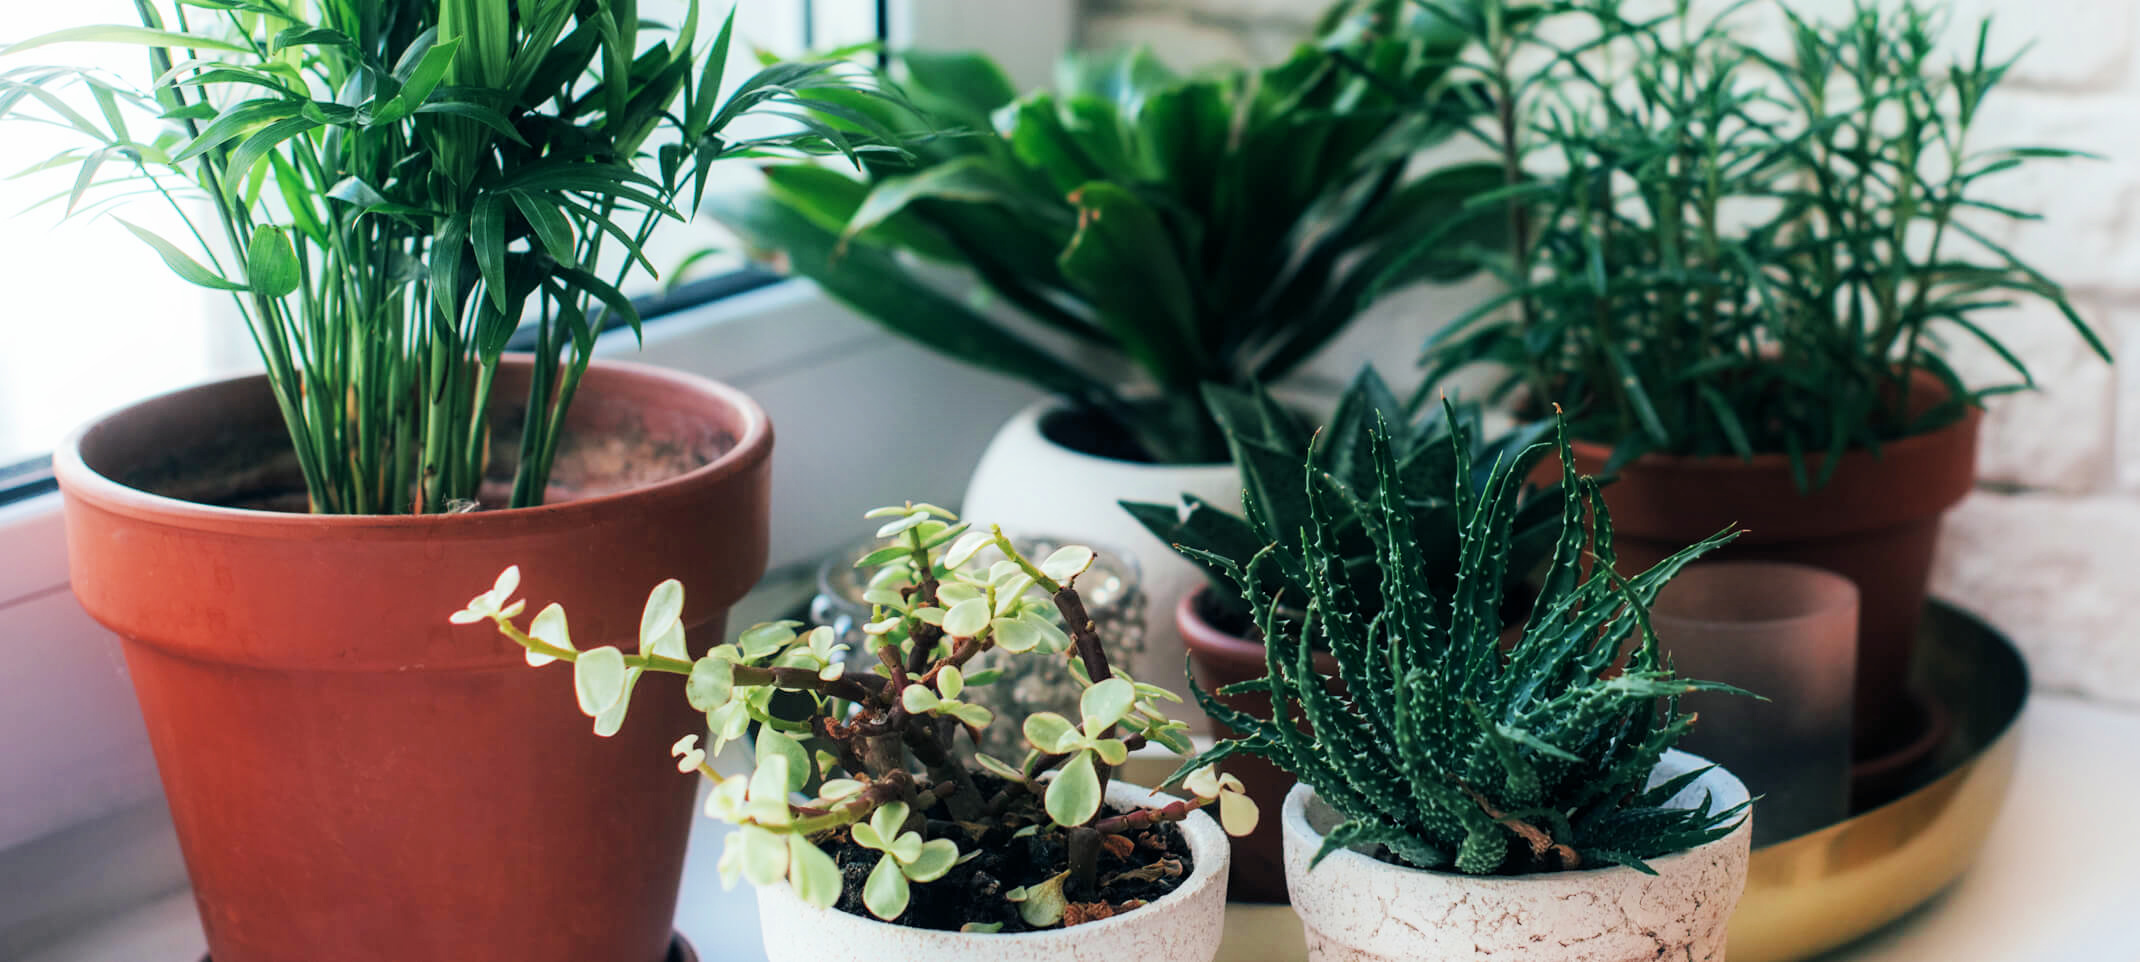 Assorted houseplants in front of a window